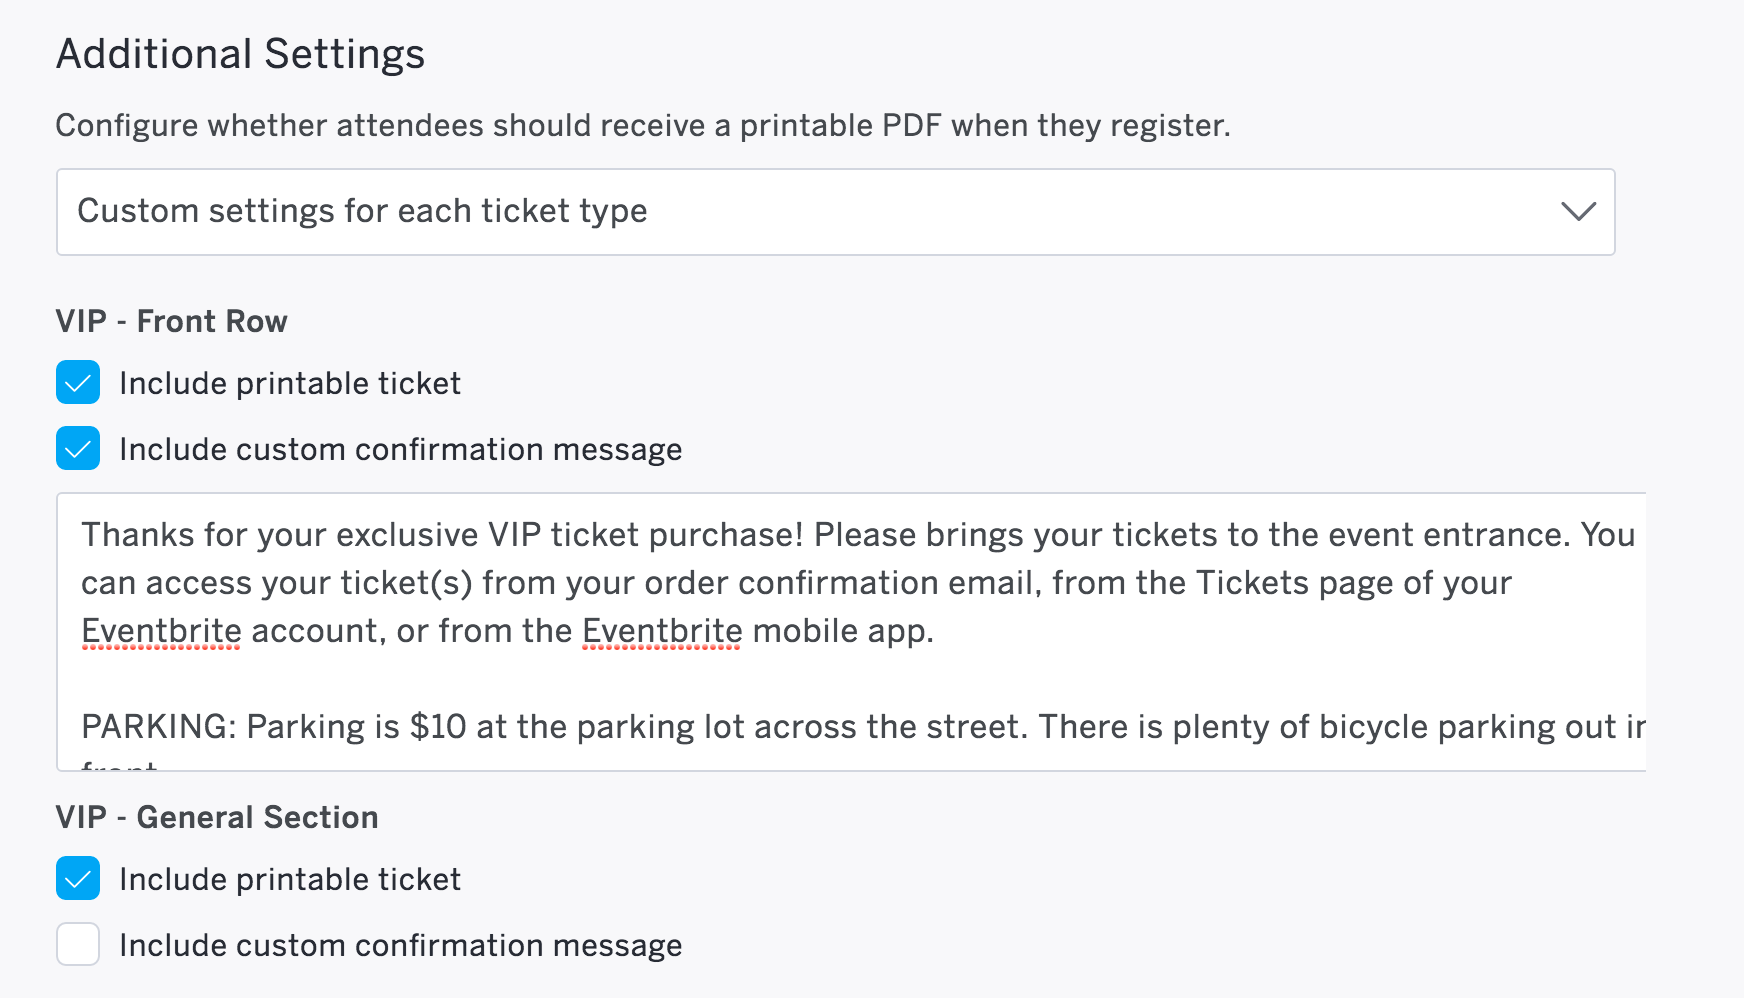 Customize Your Order Confirmation Message For Each Ticket Type